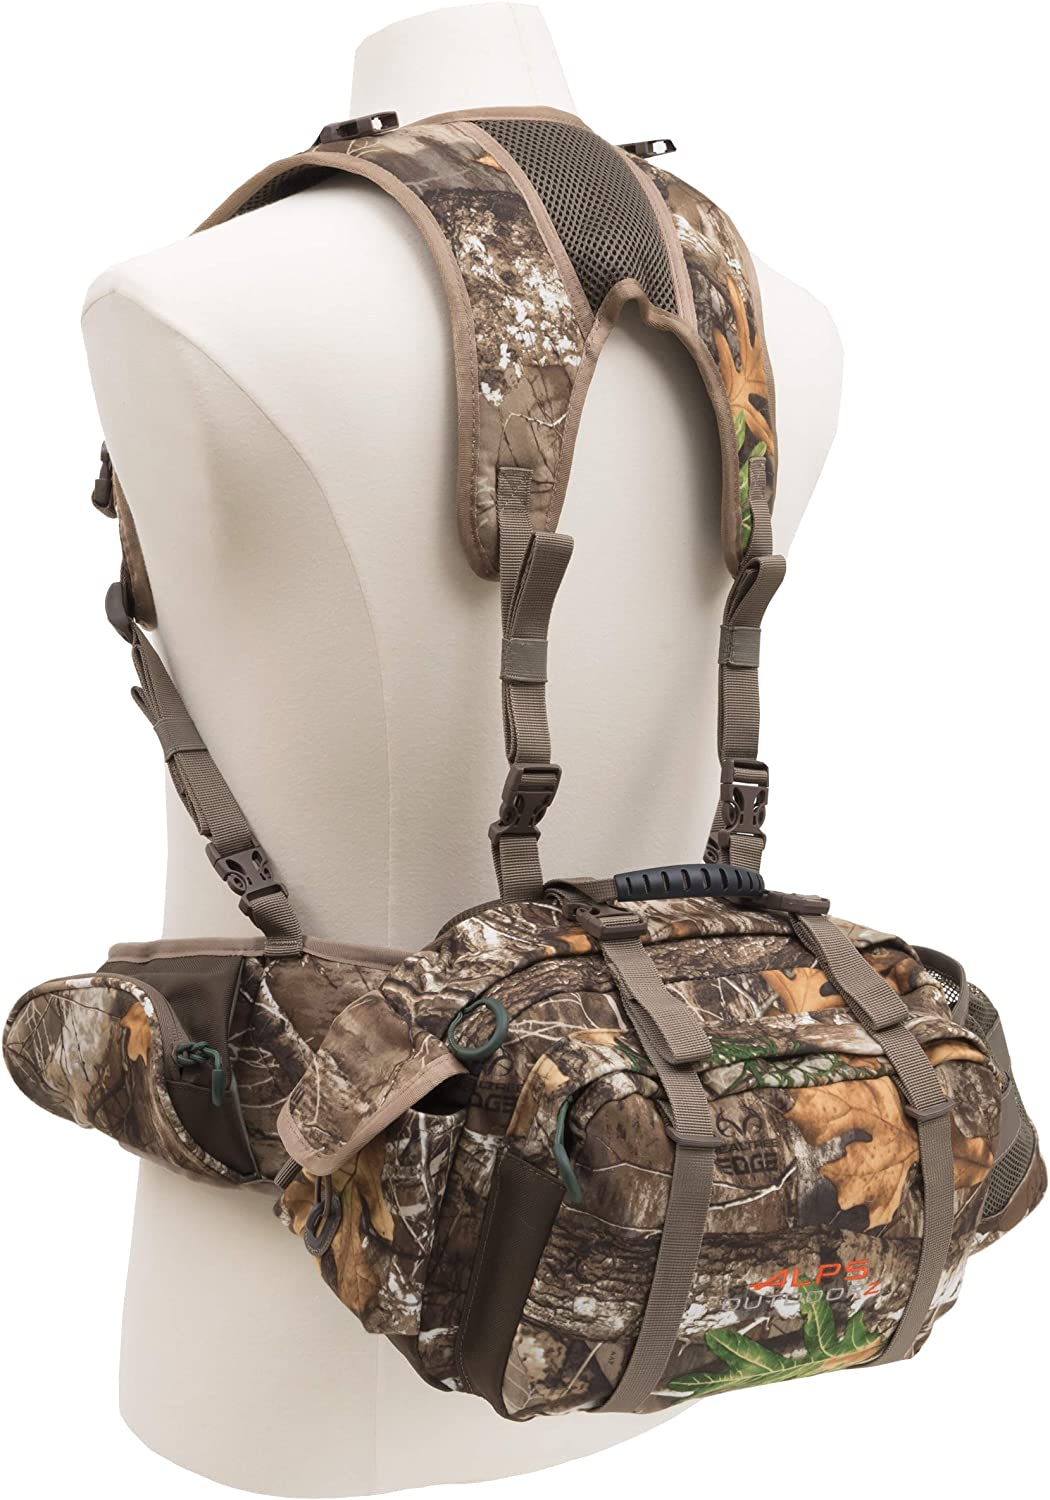 ALPS OutdoorZ Little Bear Hunting Fanny Pack, Realtree Edge: Amazon.es: Deportes y aire libre